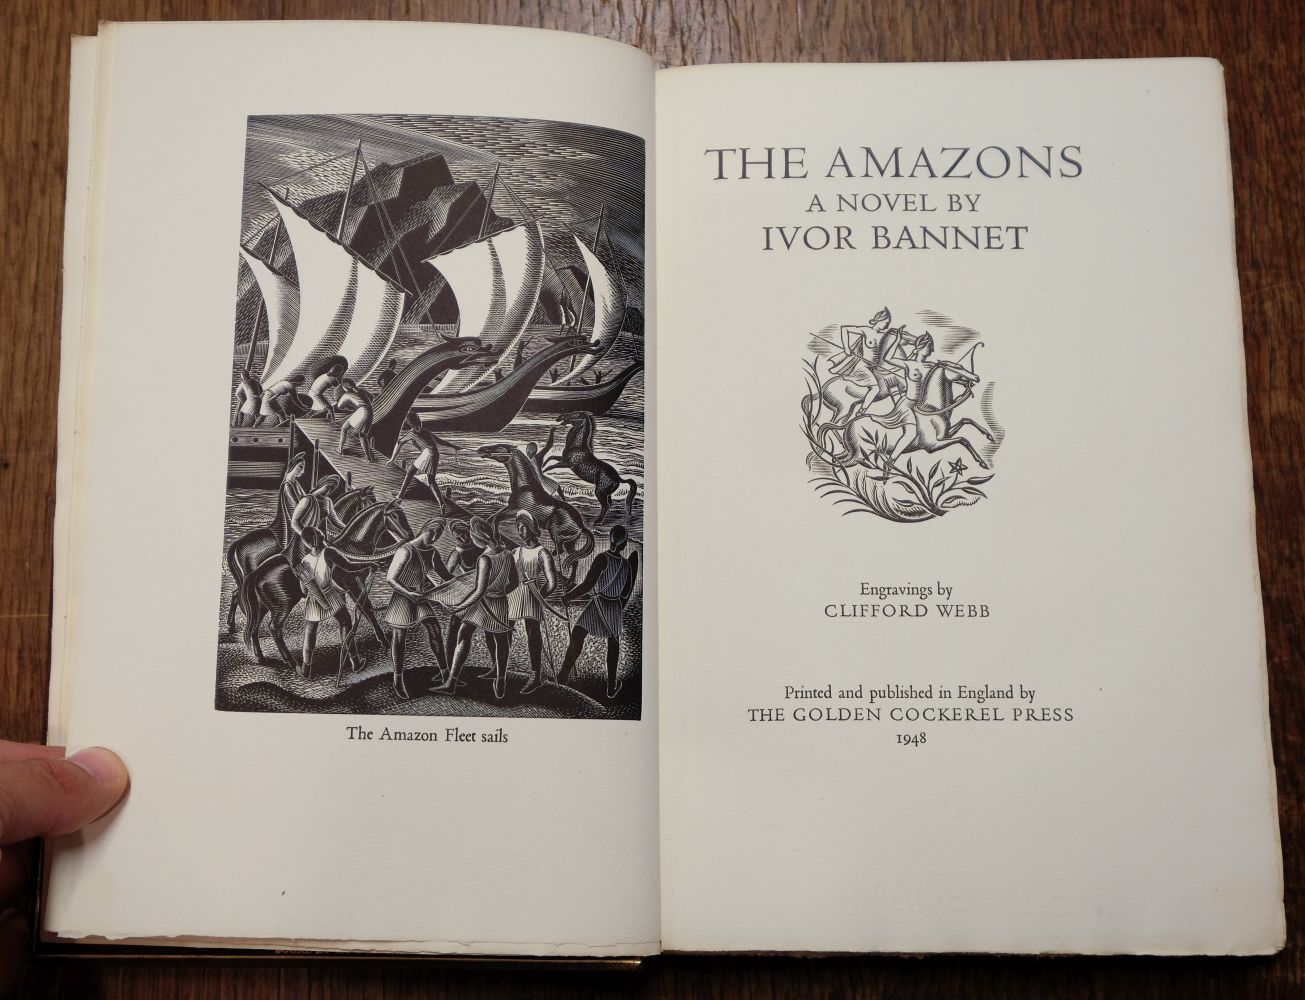 Golden Cockerel Press. The Amazons, A Novel by Ivor Bannet, 1948, signed in special binding - Image 5 of 8